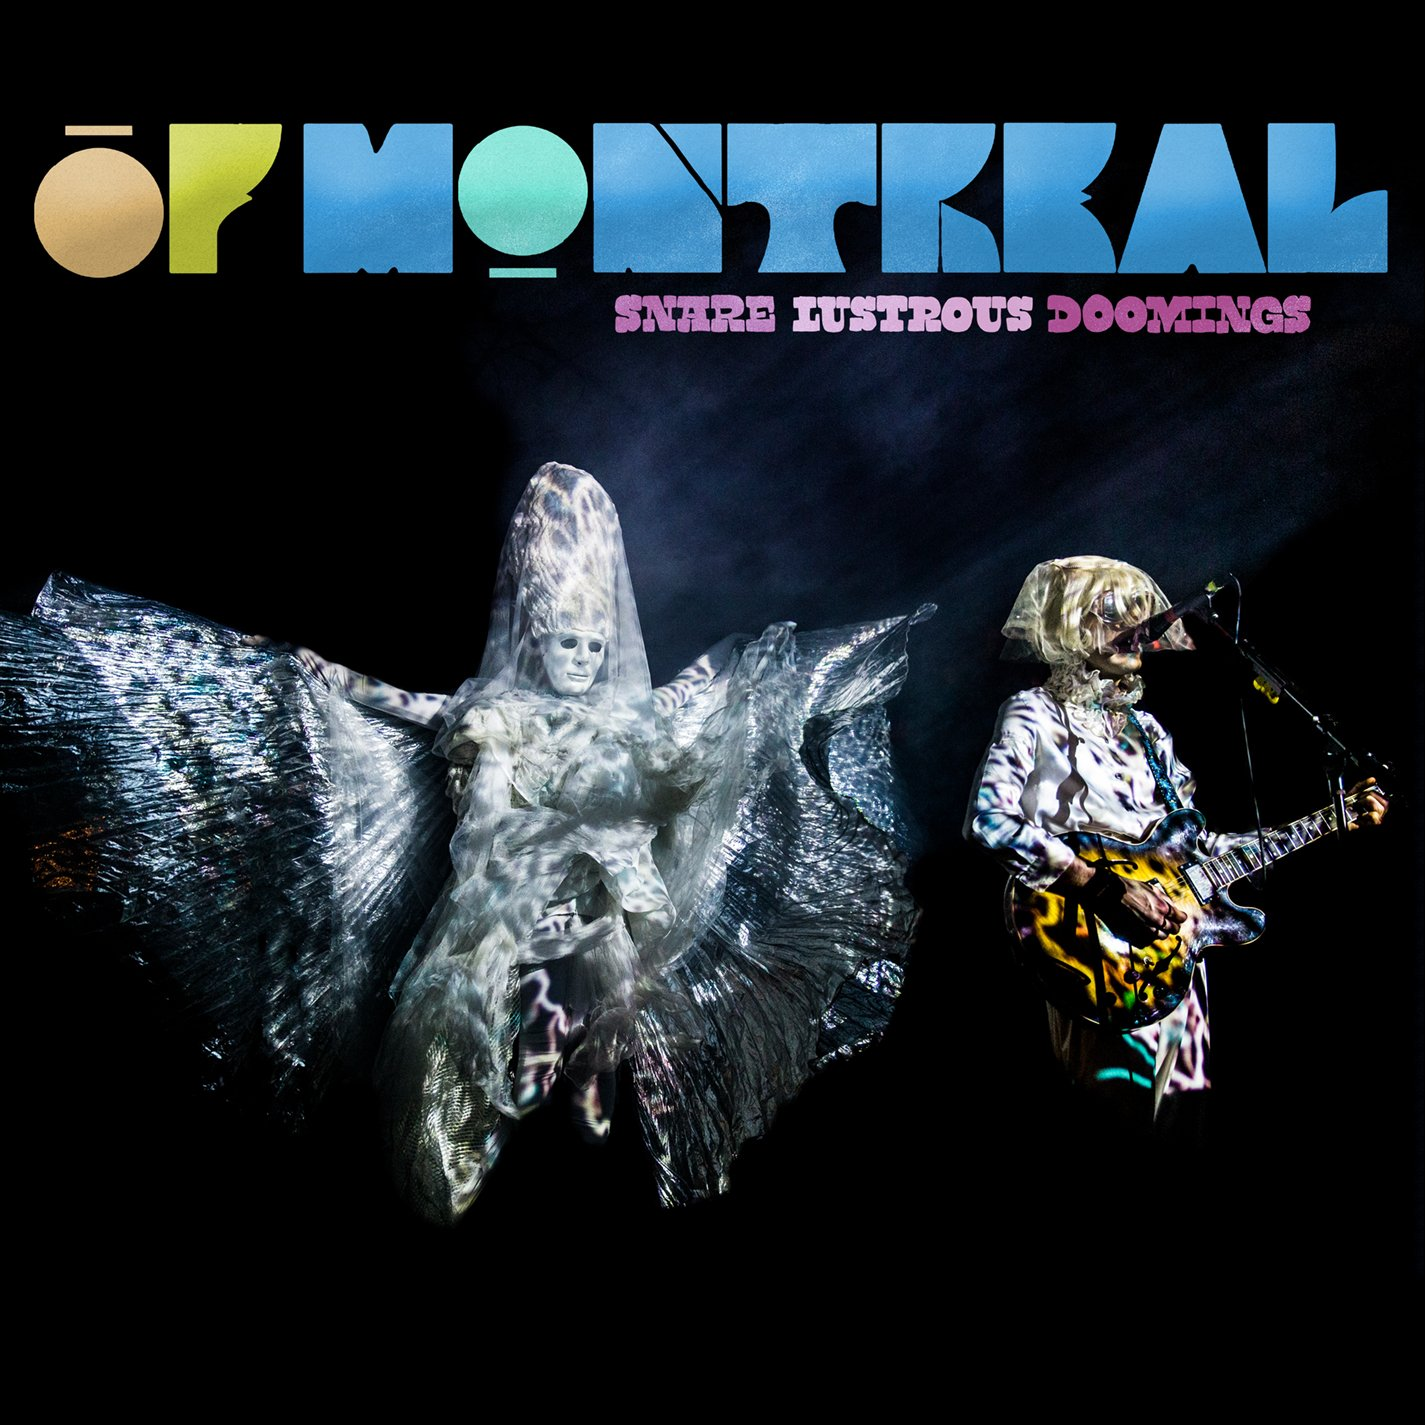 Cassette : Of Montreal - Snare Lustrous Doomings (Digital Download Card)